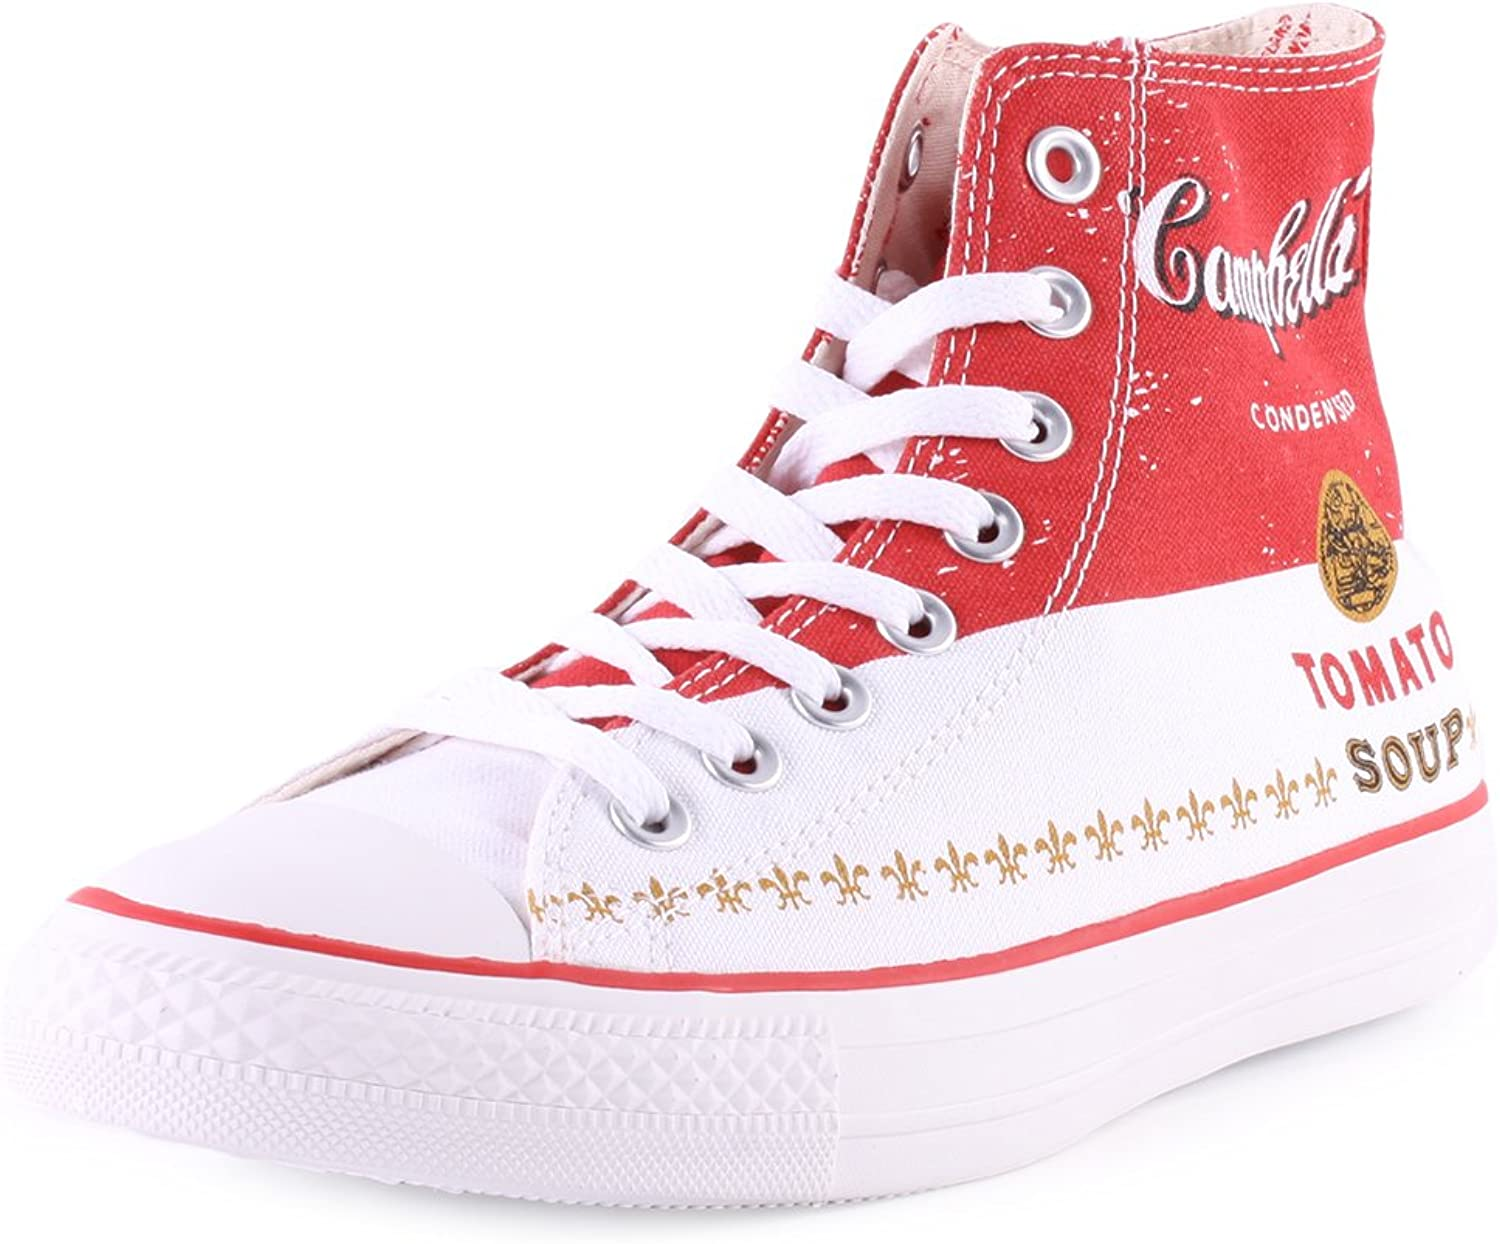 Converse Chuck Taylor All Star High Top Andy Warhol Men's Sneakers 147051C